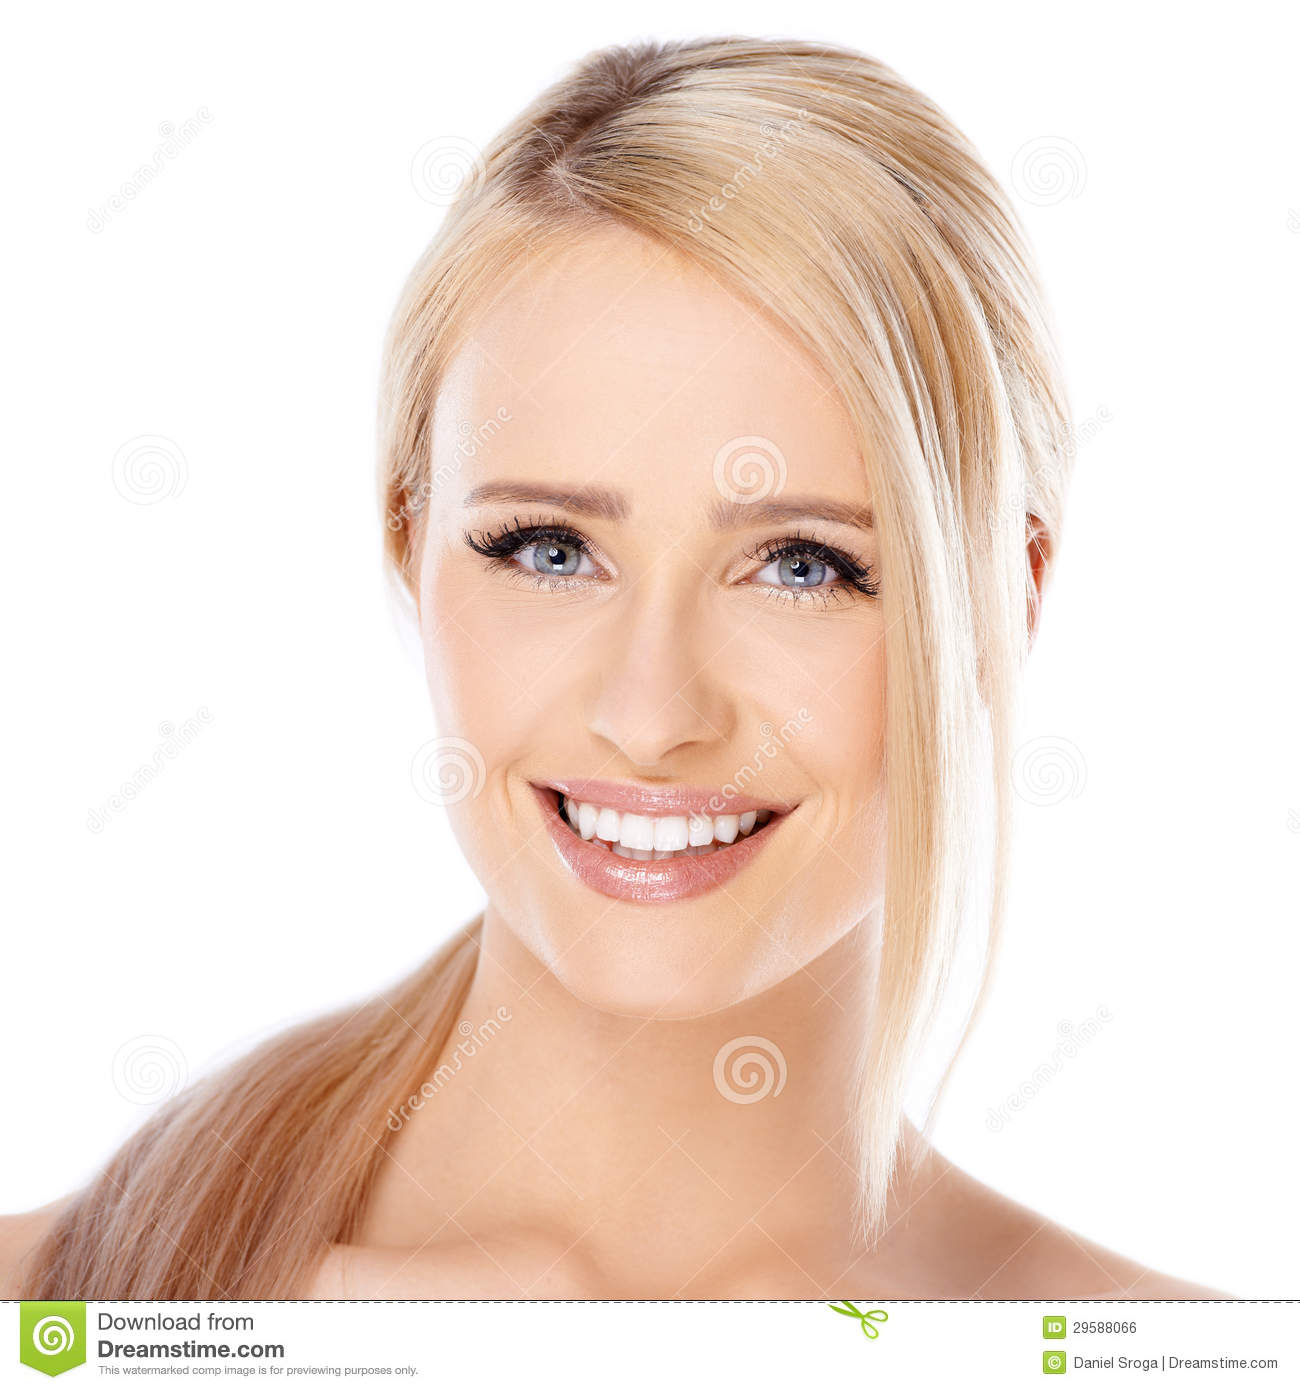 Beautiful Girl Smile: Adorable Girl With Beautiful Smile Royalty Free Stock